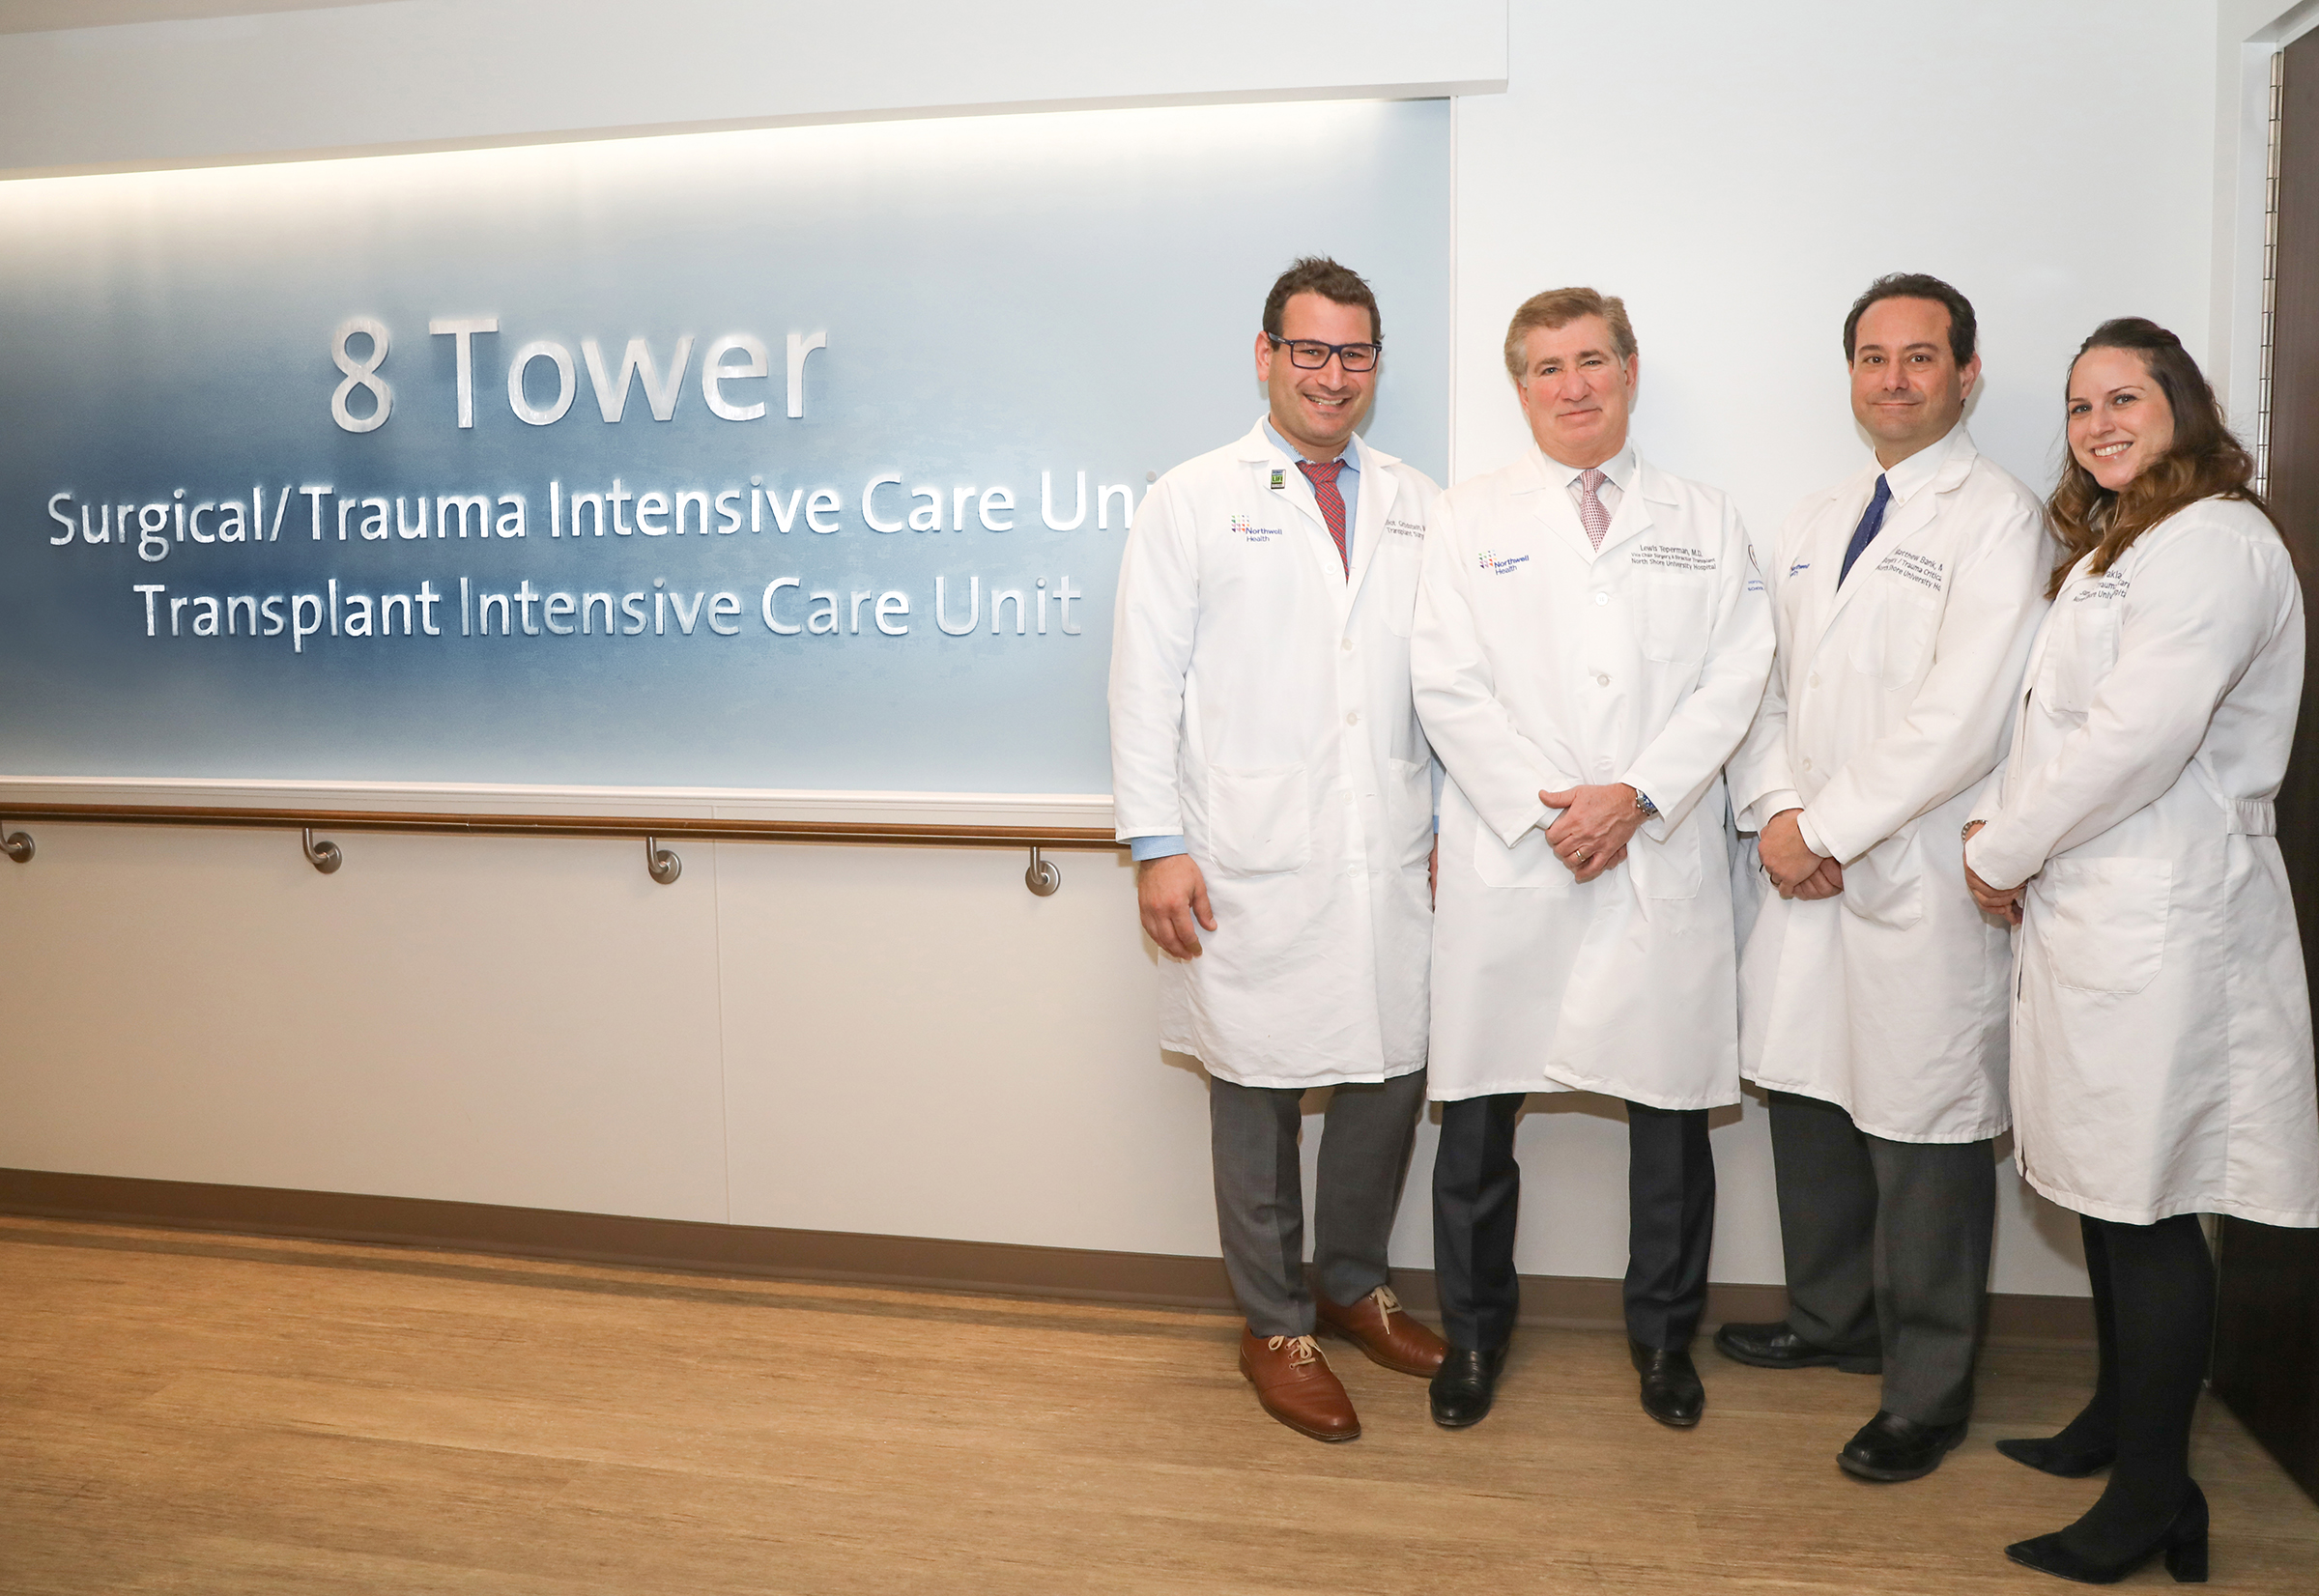 State approves Northwell to host Long Island's first liver